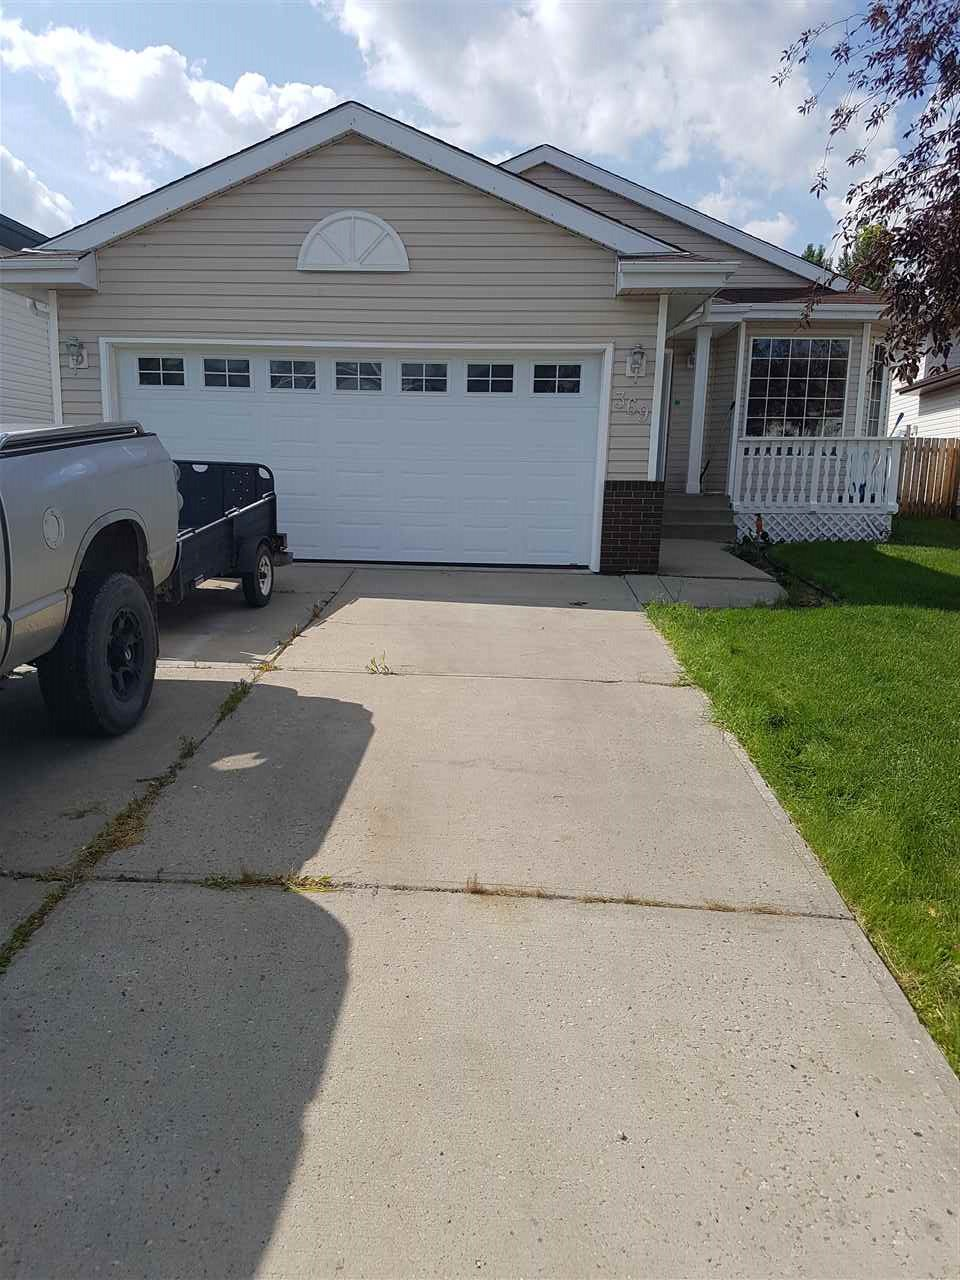 Main Photo: 369 JILLINGS Crescent in Edmonton: Zone 29 House for sale : MLS(r) # E4071425